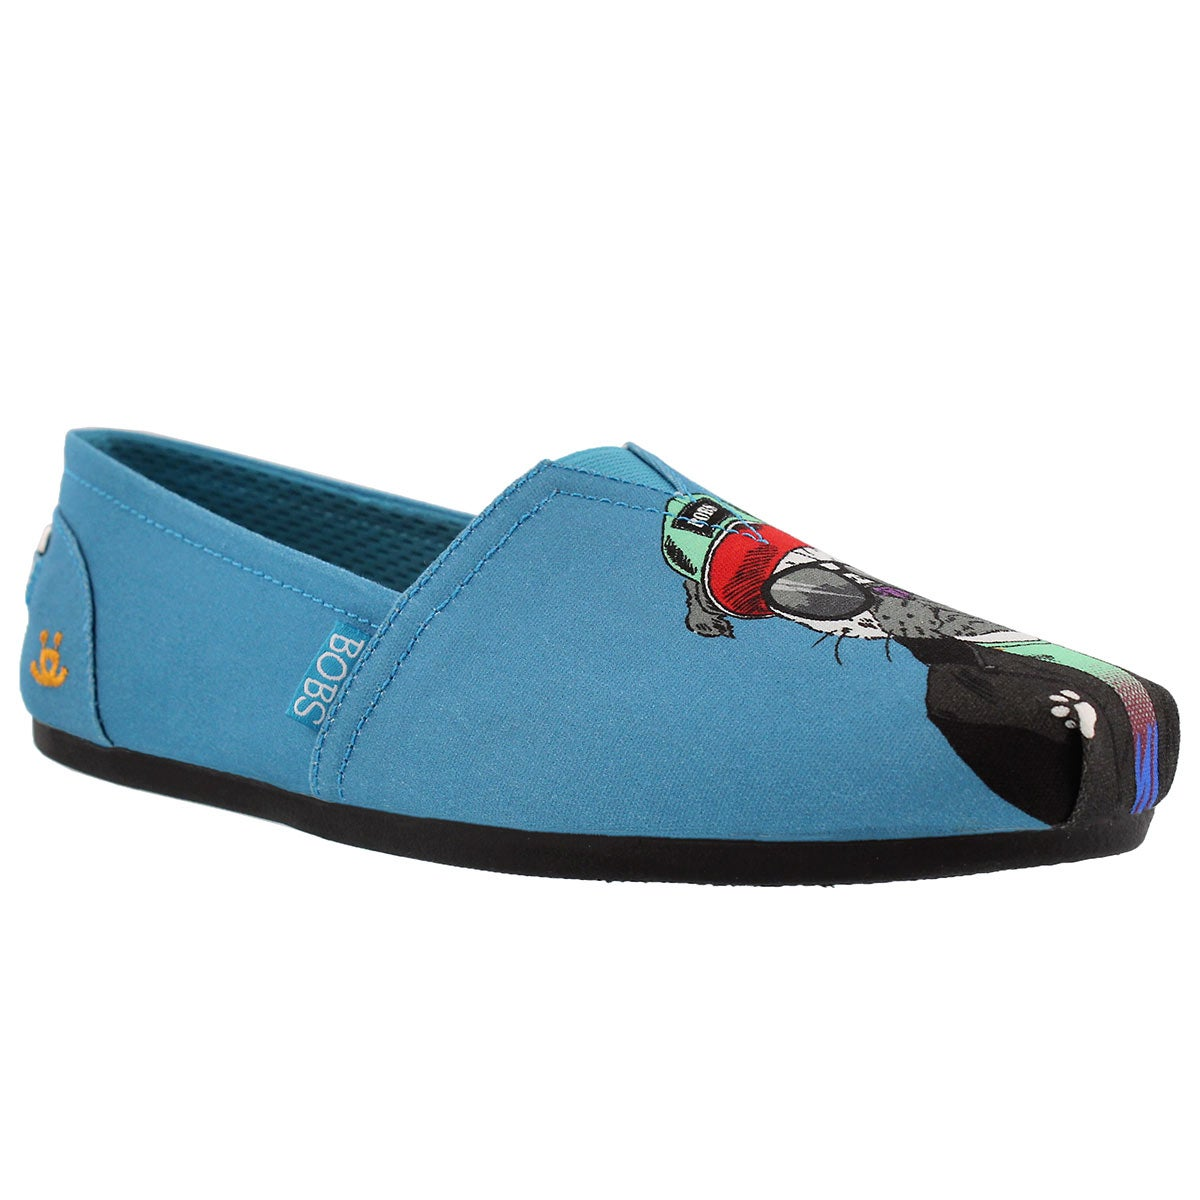 Women's BOBS PLUSH OUTPAWS teal pug slip ons